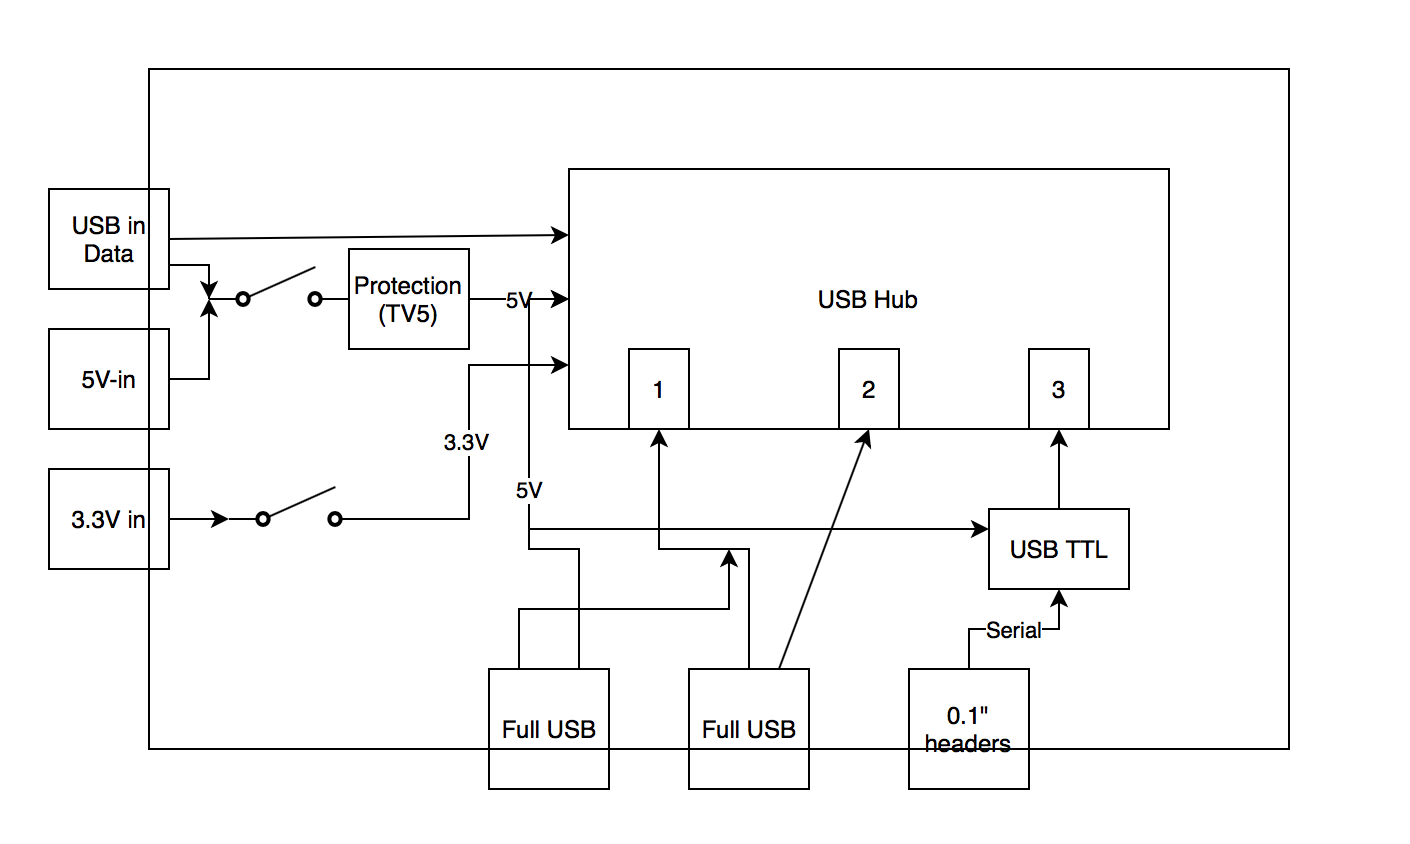 hight resolution of usb hub serial subsystem public systems level design documents blockdiagram usbhub serial2 png schematic